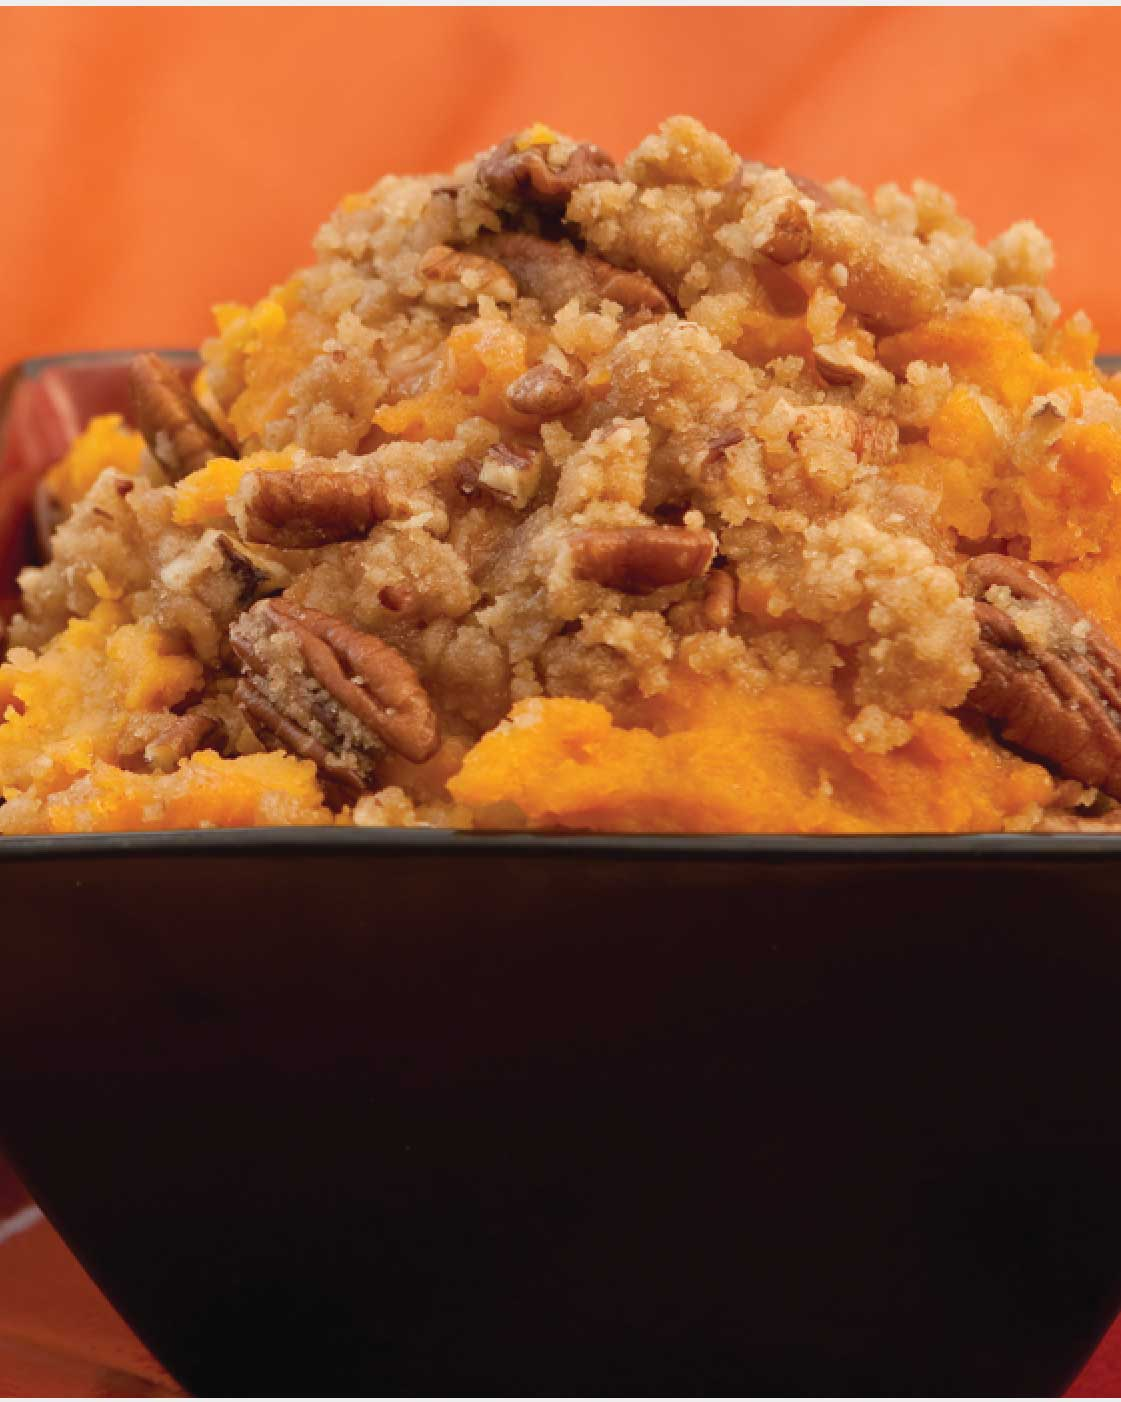 Roasted Sweet Potatoes with Crunchy Cinnamon Pecan Topping